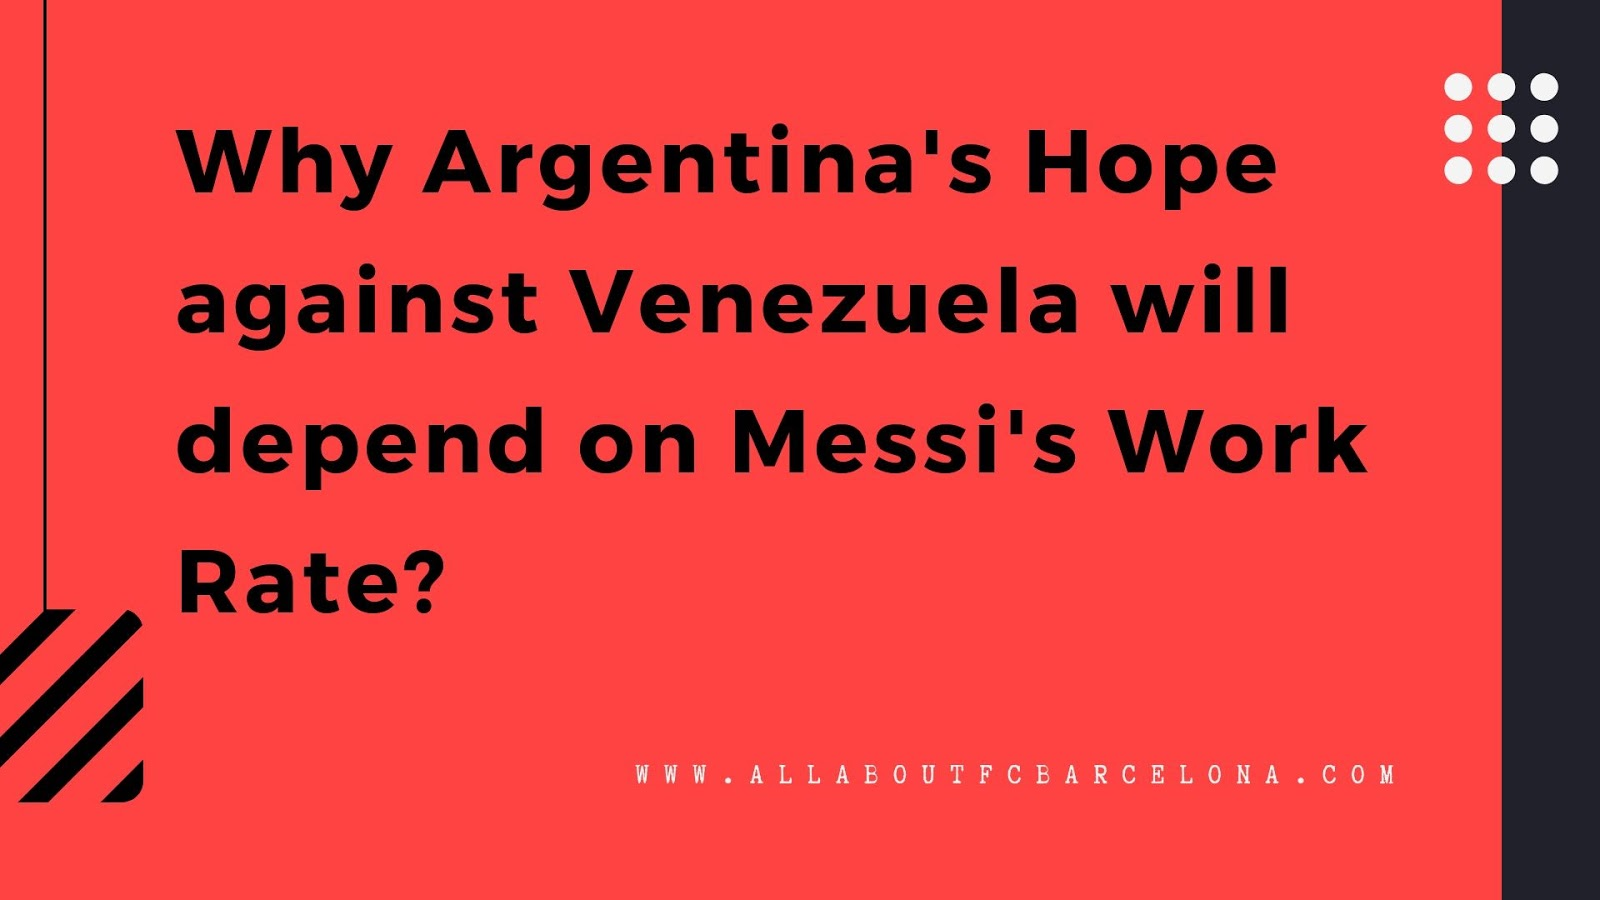 Why Argentina's Hope against Venezuela will depend on Messi's Work Rate? #AllAboutFCB #FCBarcelona